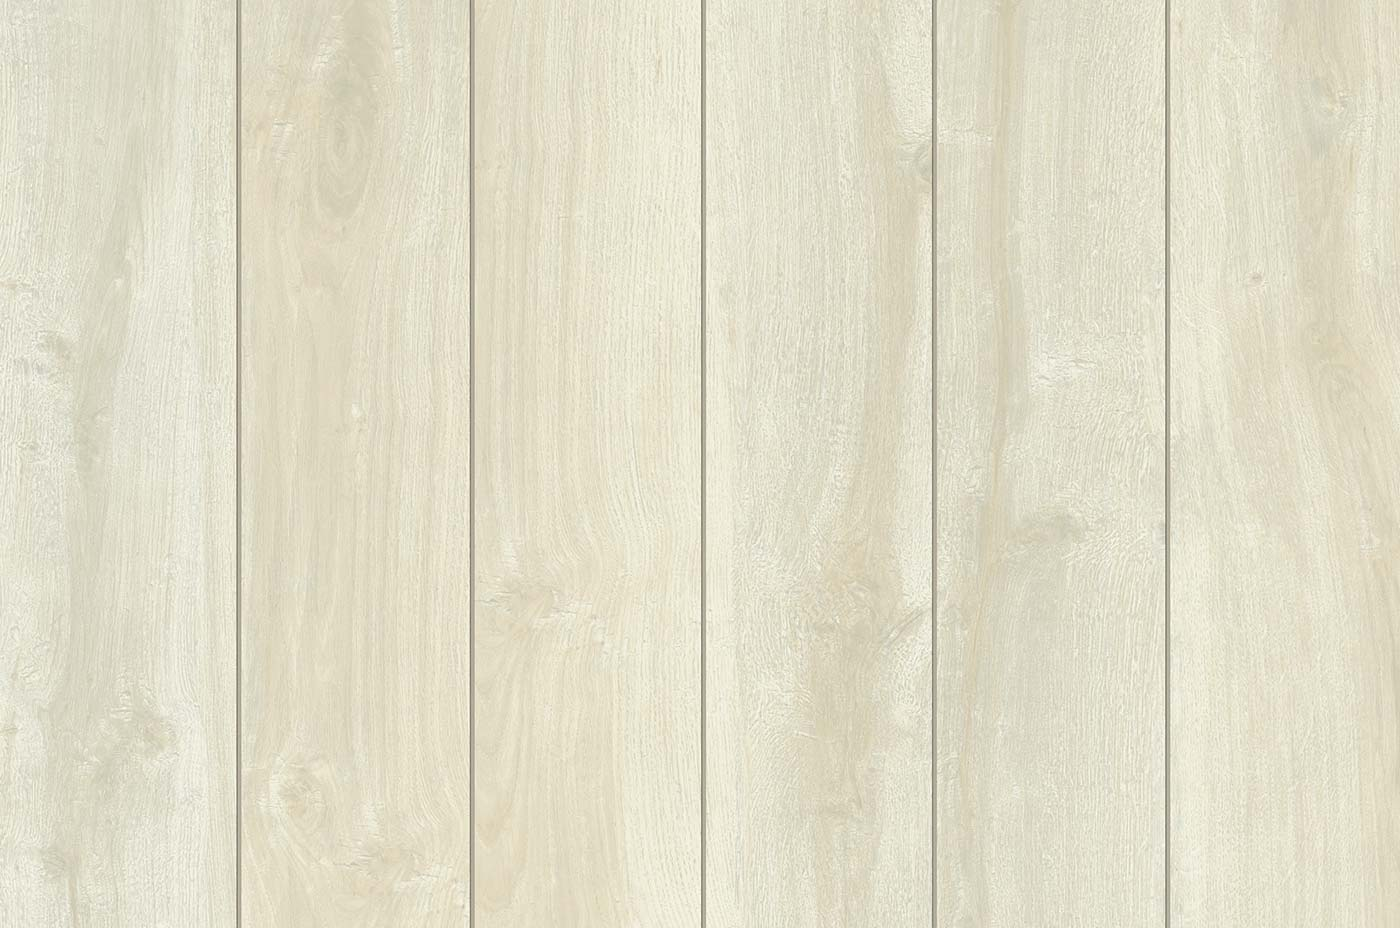 Urban Wood By Florim Lmg Tile